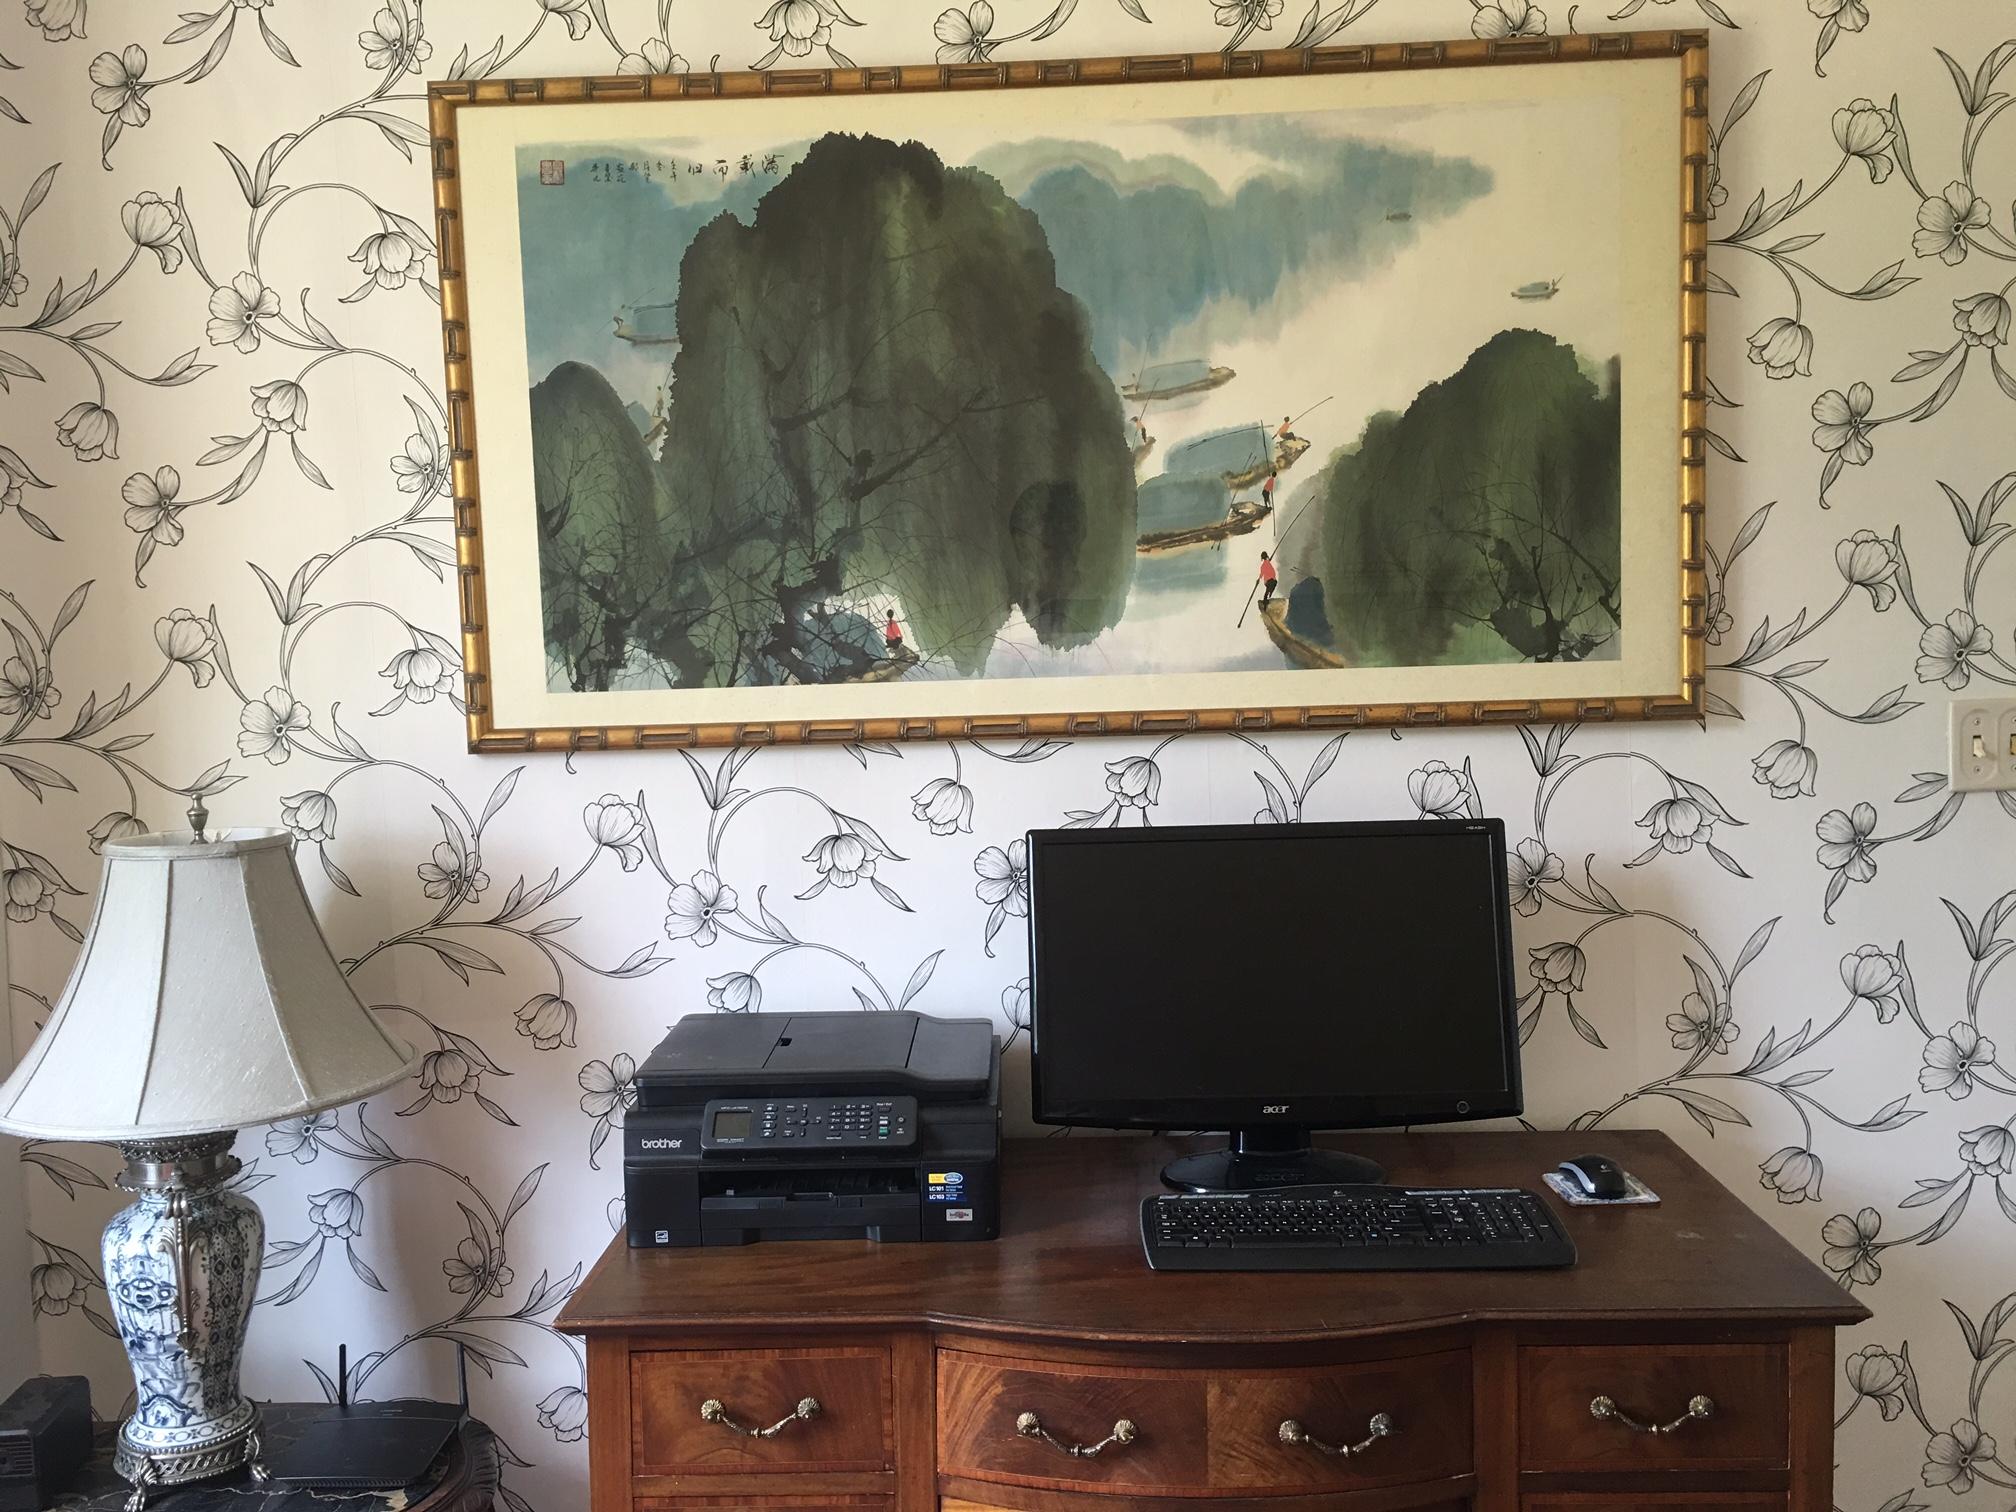 Woodlawn Inn has a beautiful new office now.  It's quite lovely with the new wallpaper. We'll post a final picture when done, but this is the first wall!   Yahoo!!